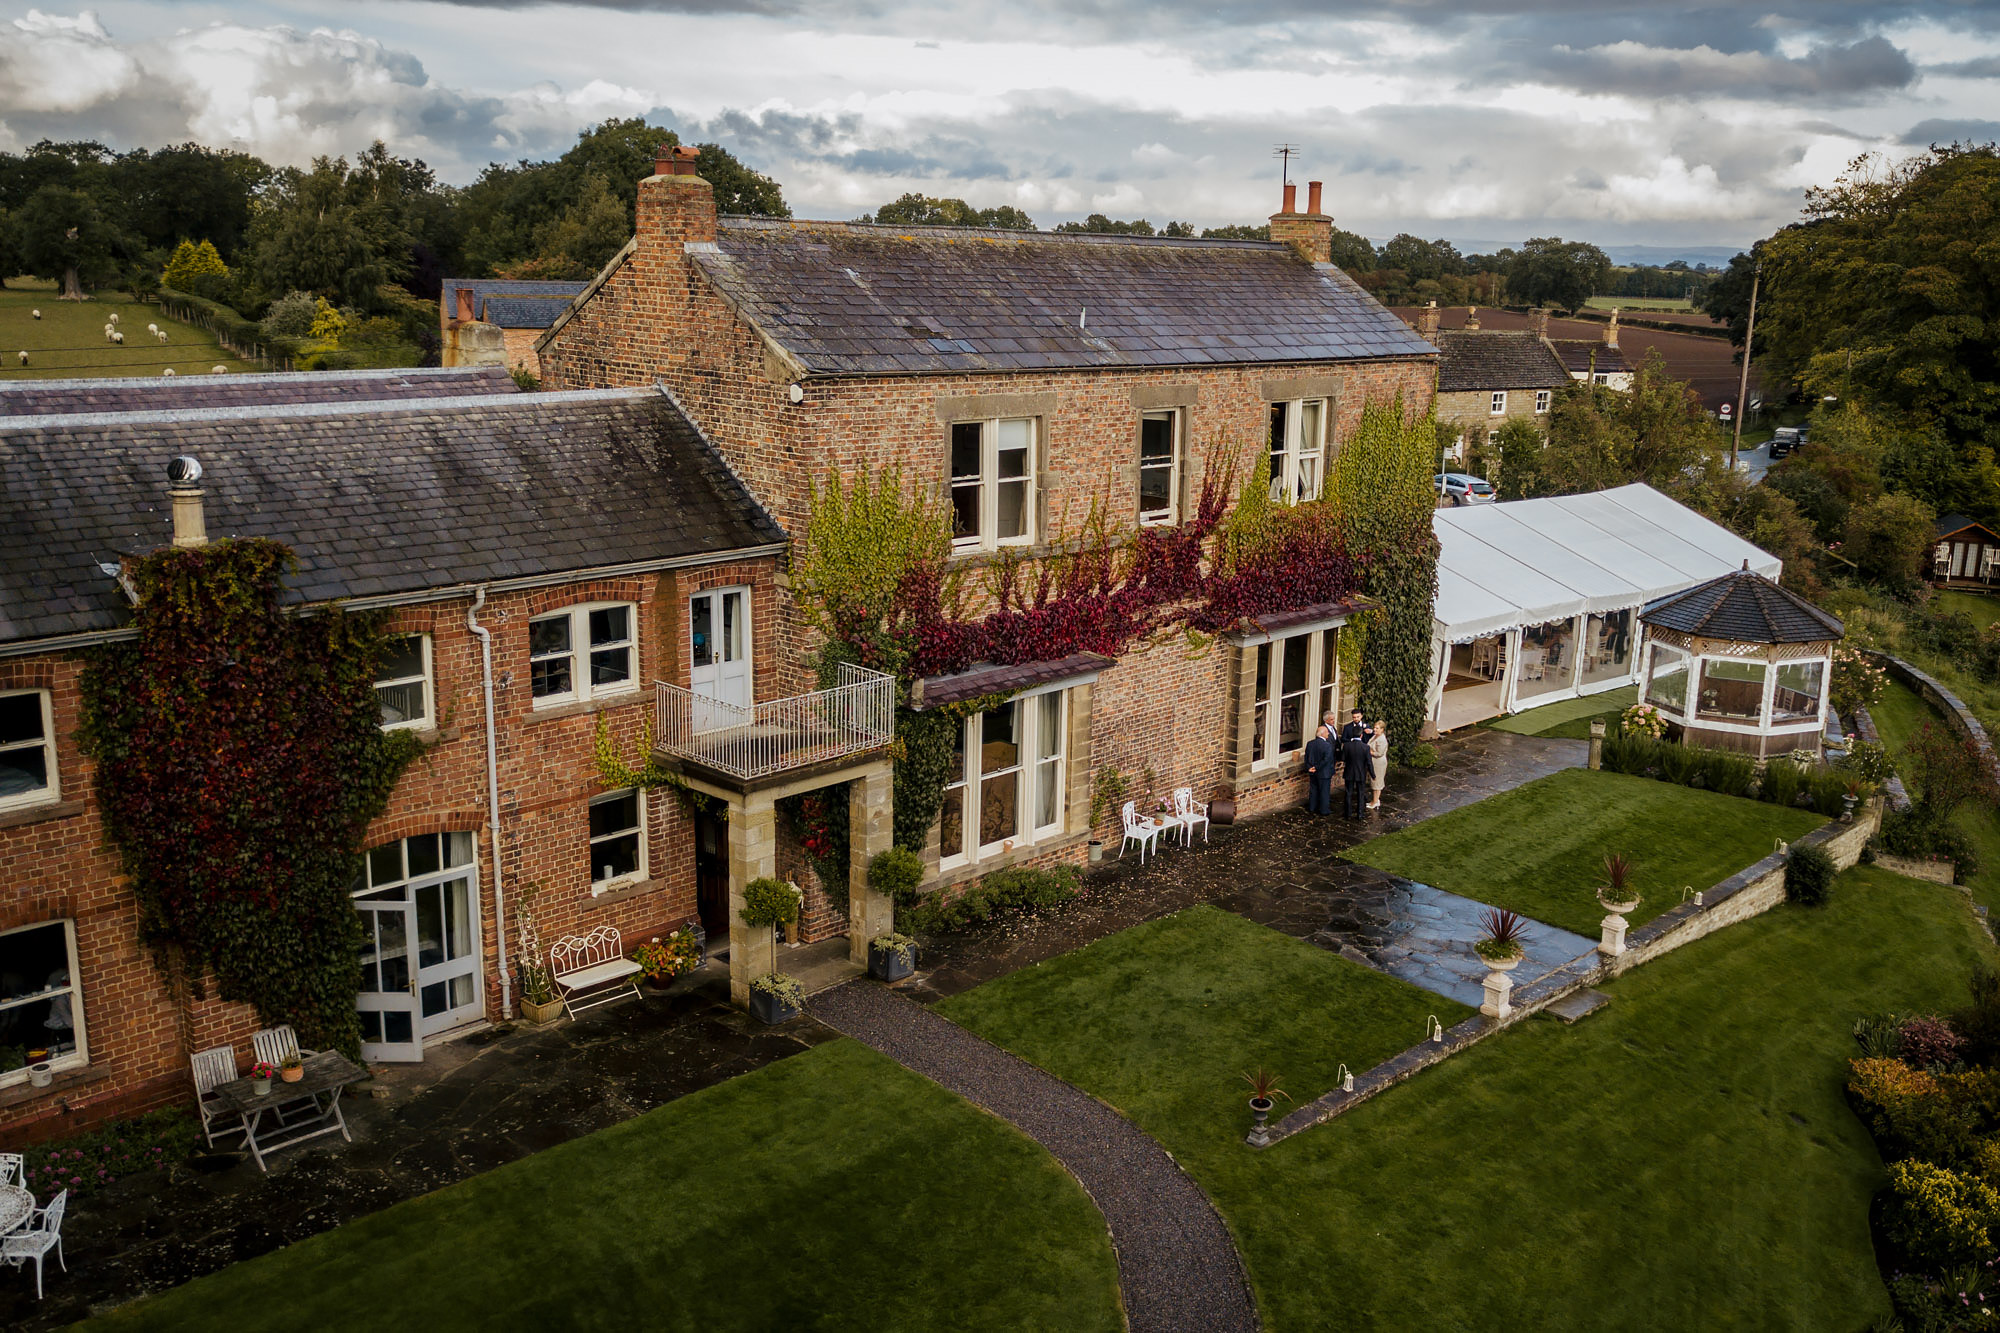 Aerial shot of Tanfield House and marquee in Yorkshire